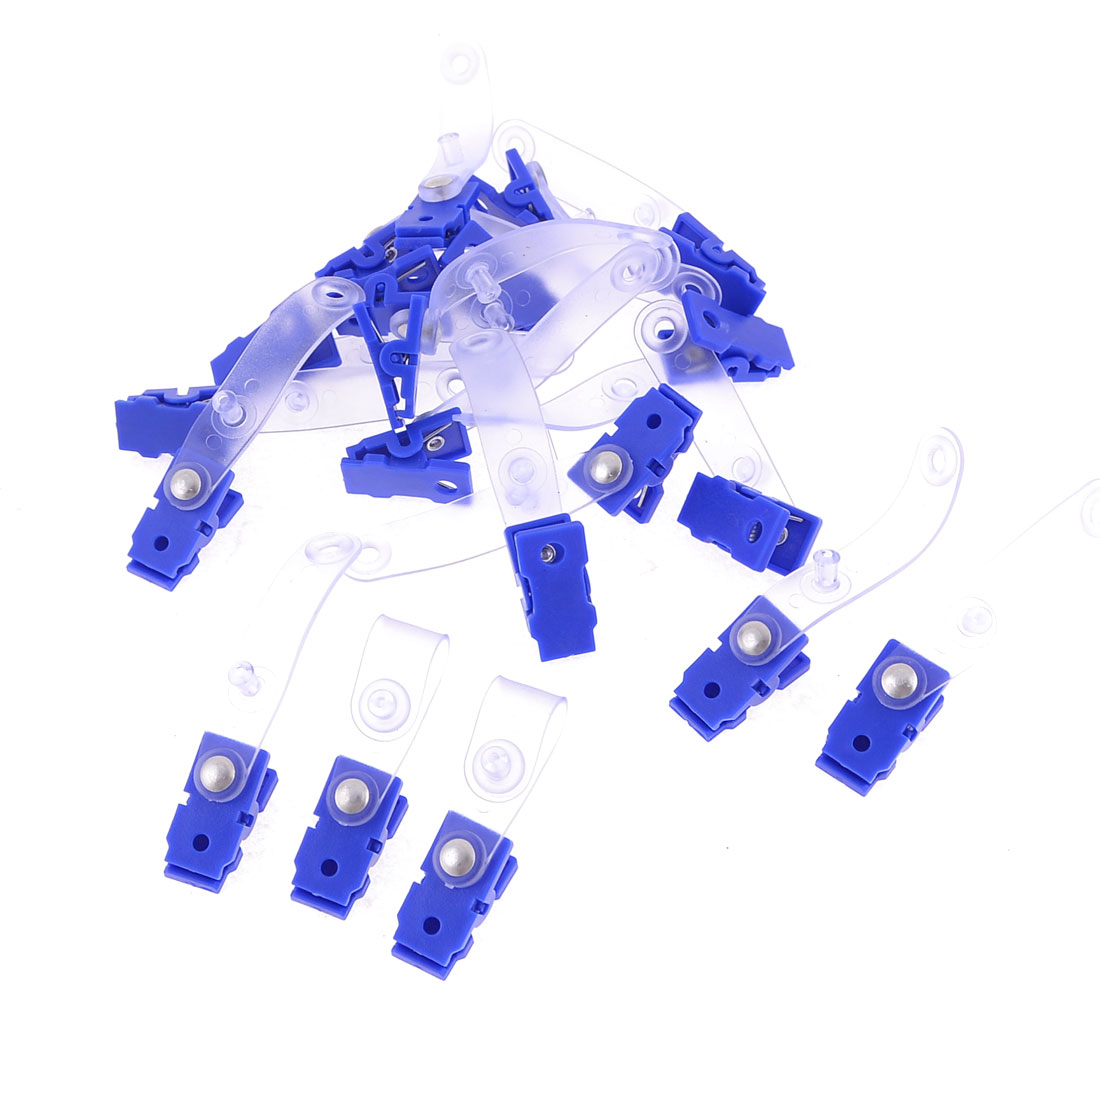 Unique Bargains 20 Pcs Plastic Retractable Badge Clip ID Card Name Tag School Office Bank Students Stationery Clear Blue